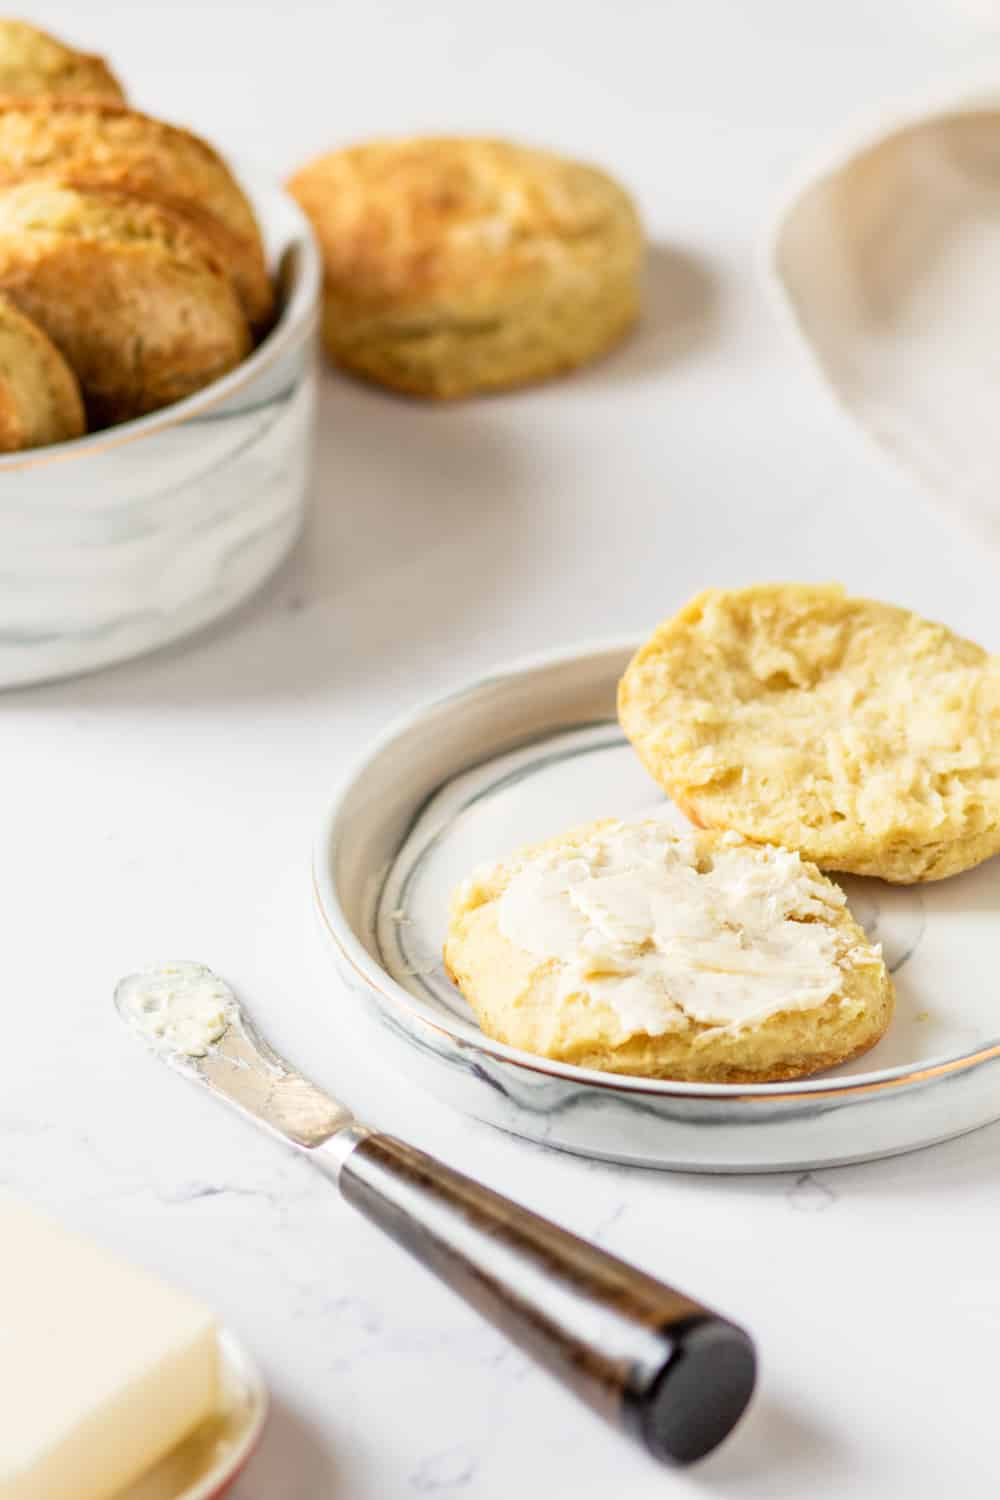 A white plate with a cut open vegan biscuit. The bottom half has a slab of butter on it and is in front of the top half. There is a knife with butter on it in front of the plate and a stick of butter in front of the knife. There is a white bowl filled with vegan biscuits behind plate to the left. A whole vegan biscuit is on the right side of the bowl. Everything is on a white counter.